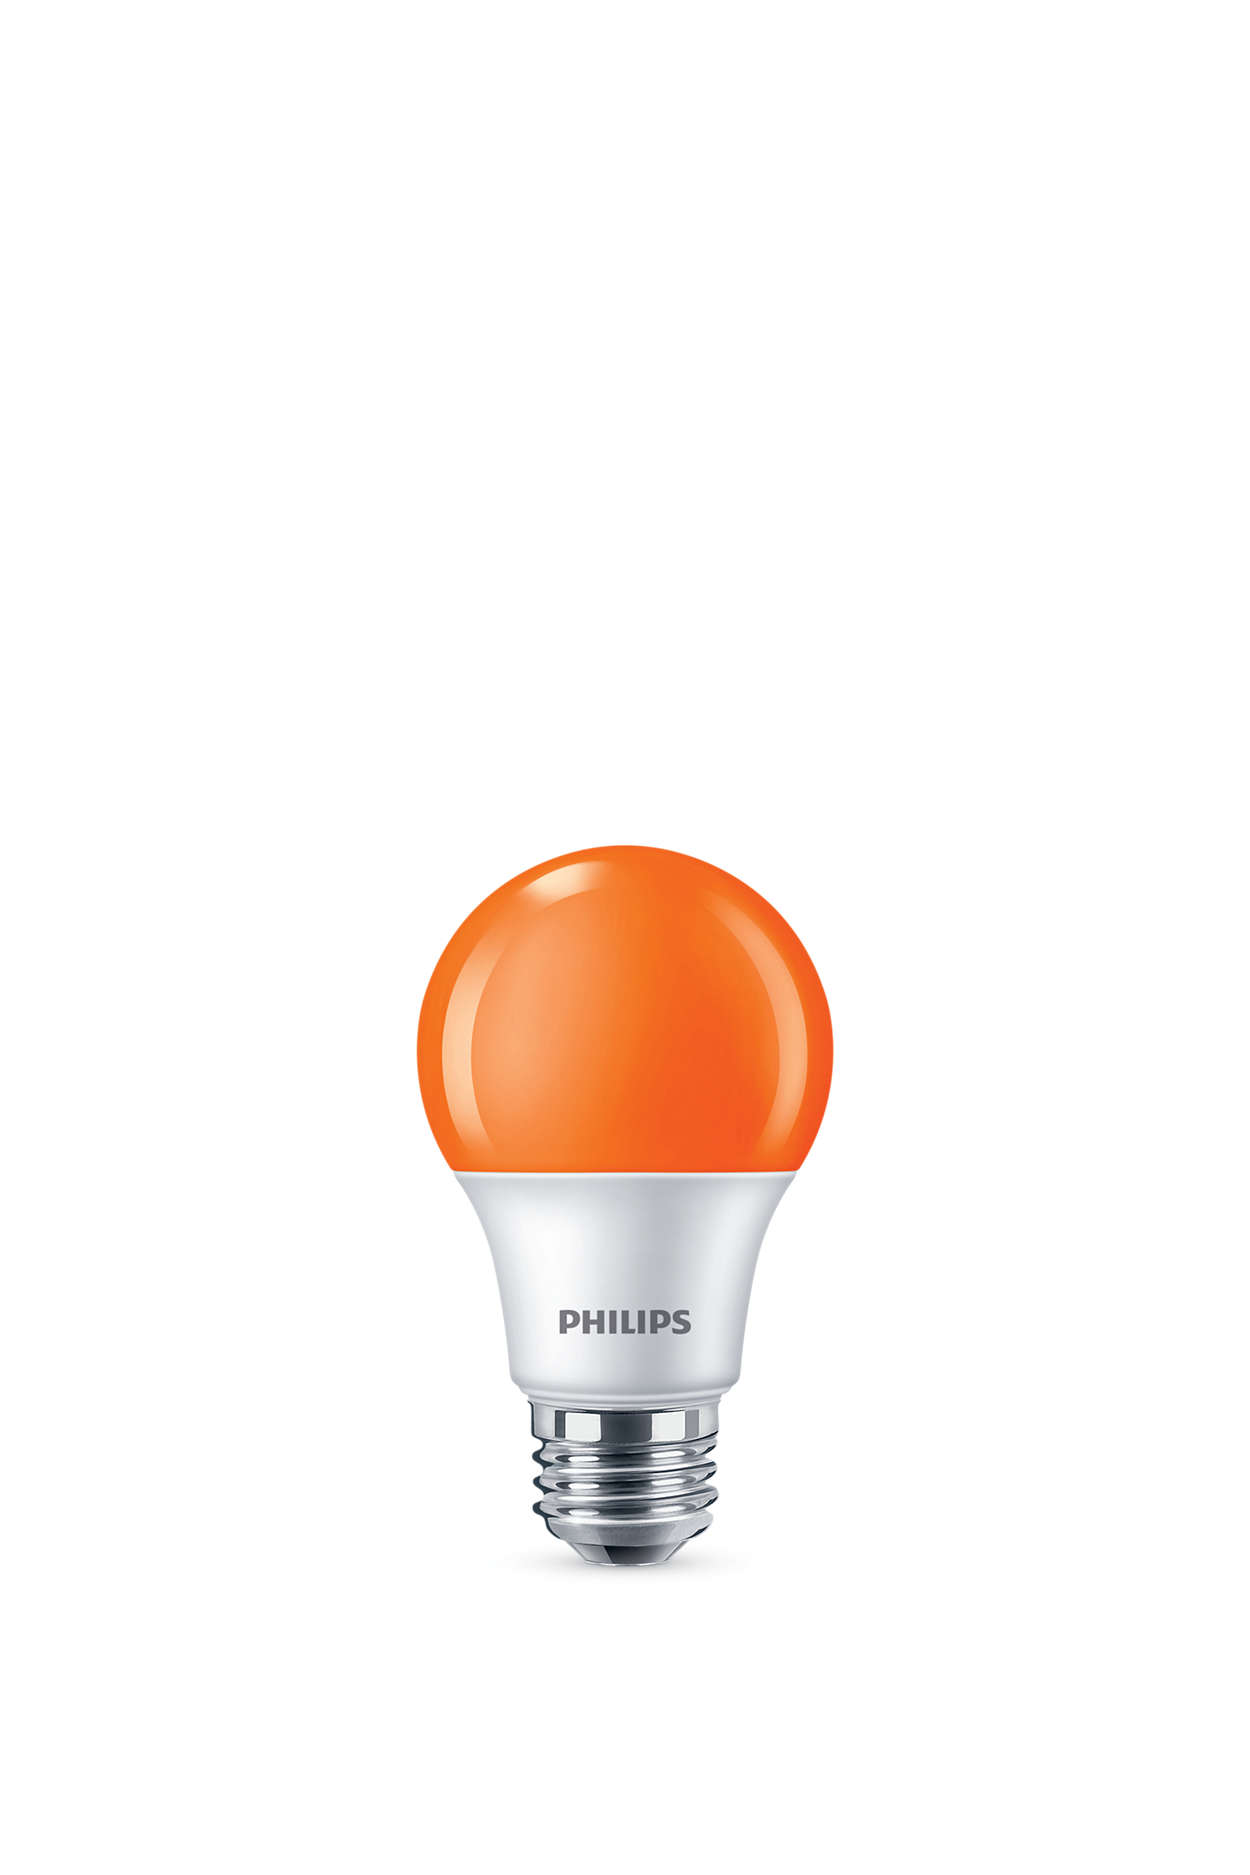 Colored LED bulb with bright orange light.